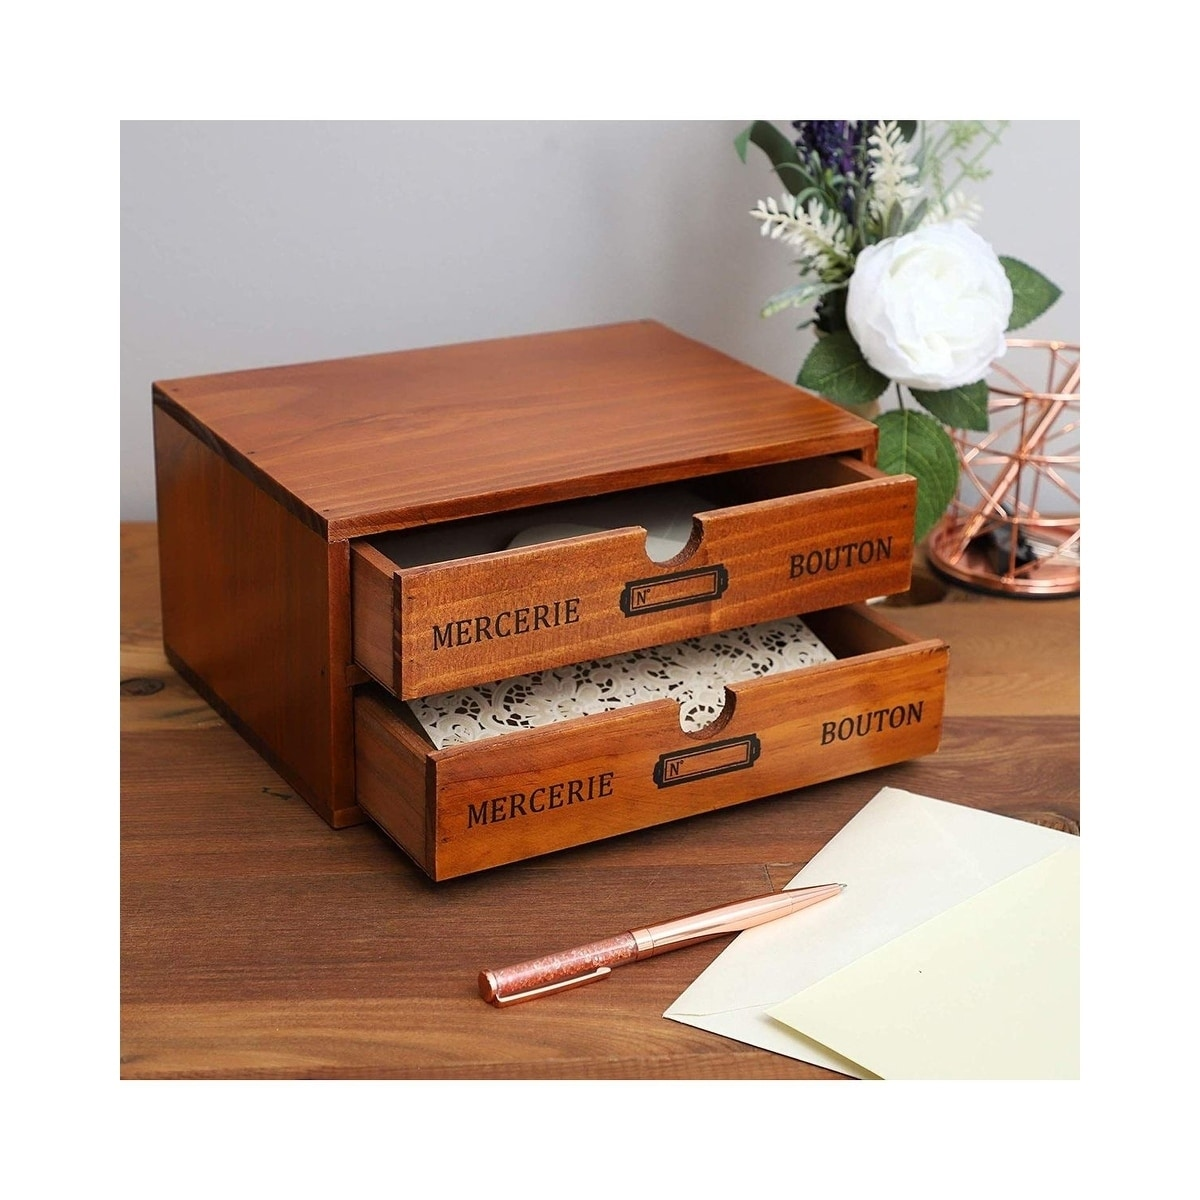 Small Wood Desktop Organizer Storage Box With Drawers French Design 2 Drawers Overstock 29050614